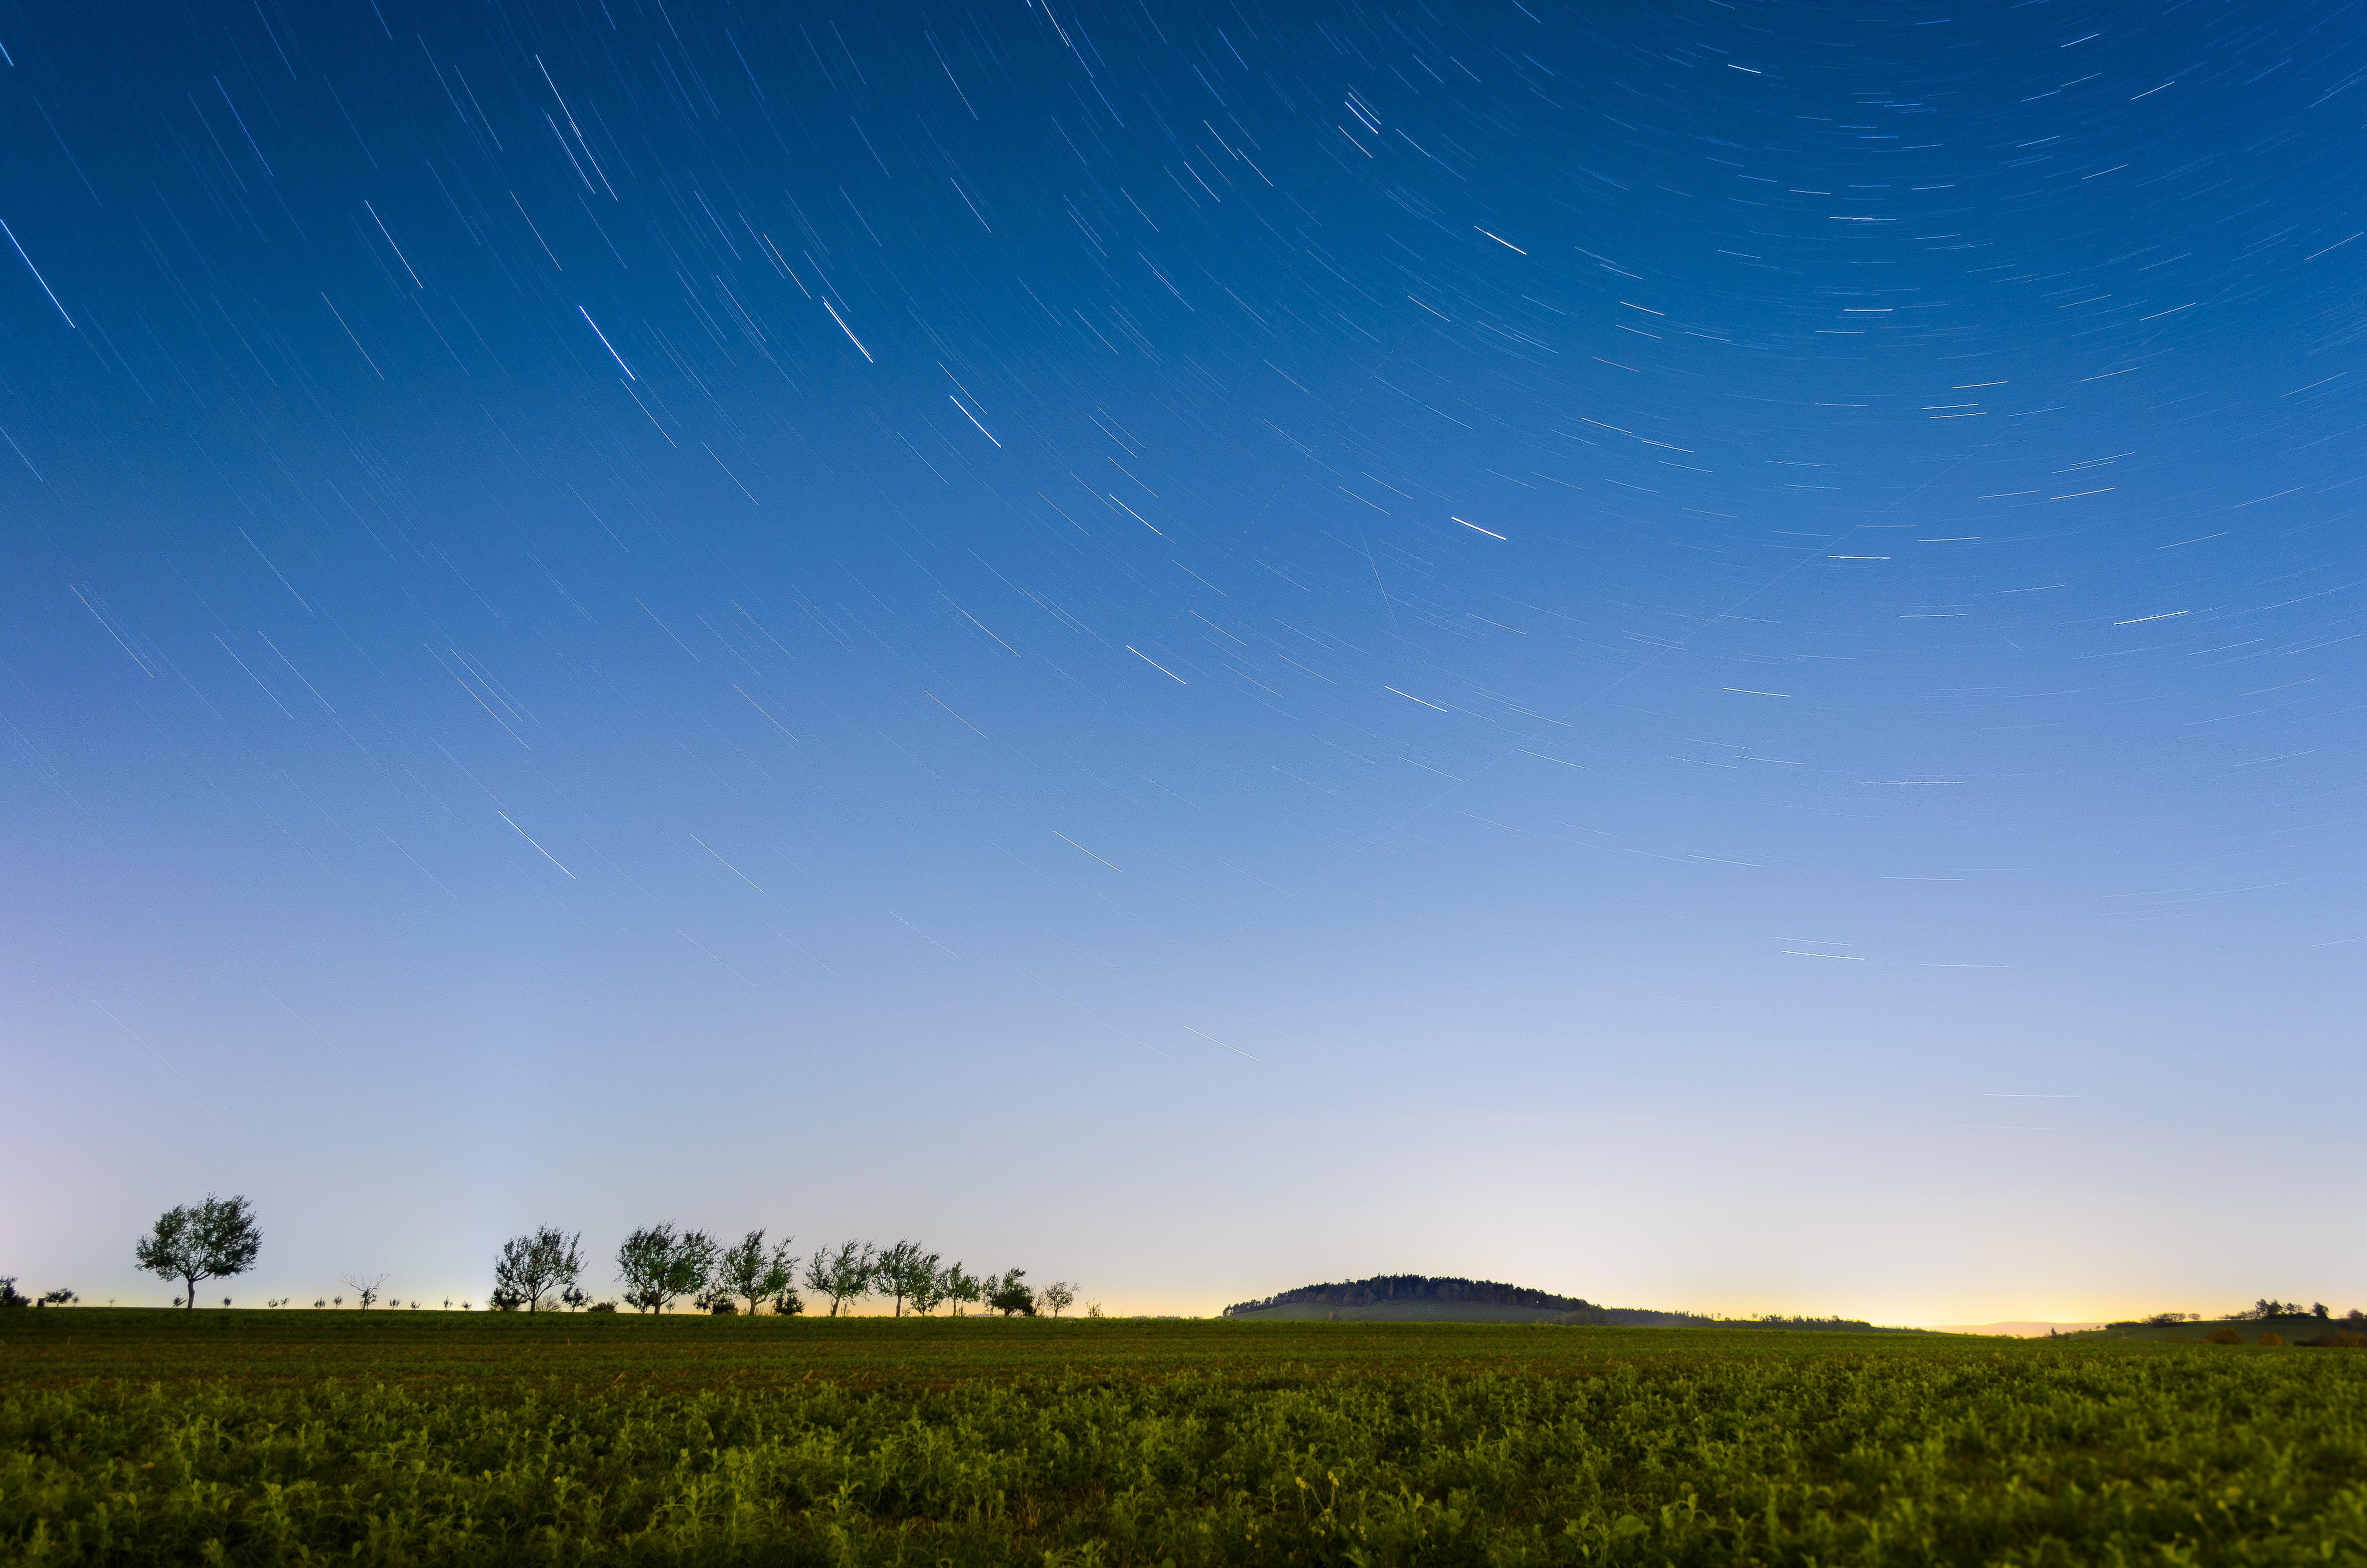 Time-lapse Photography of Field With Trees and Grasses